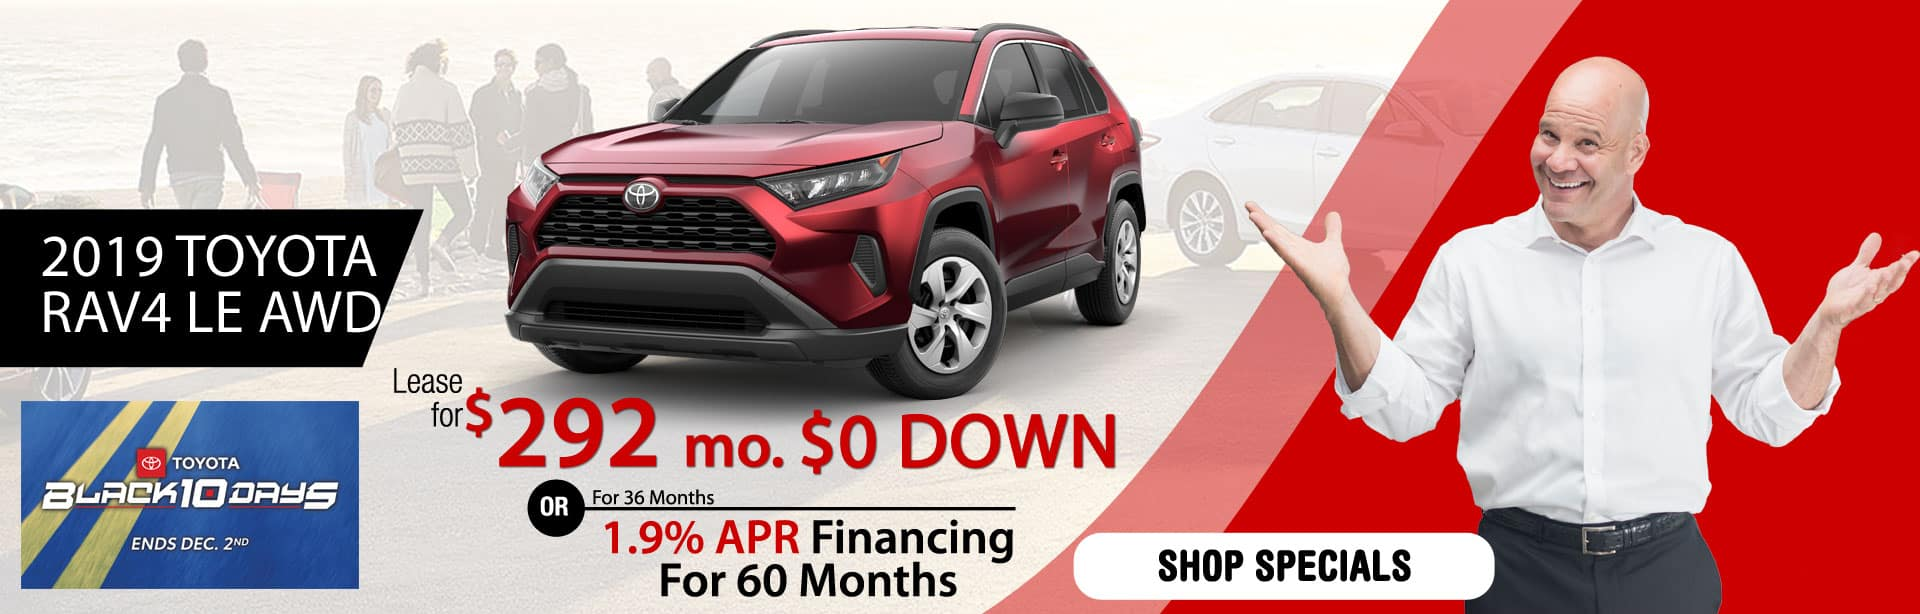 Toyota Pay By Phone >> Tarbox Toyota Toyota Dealer In North Kingstown Rhode Island